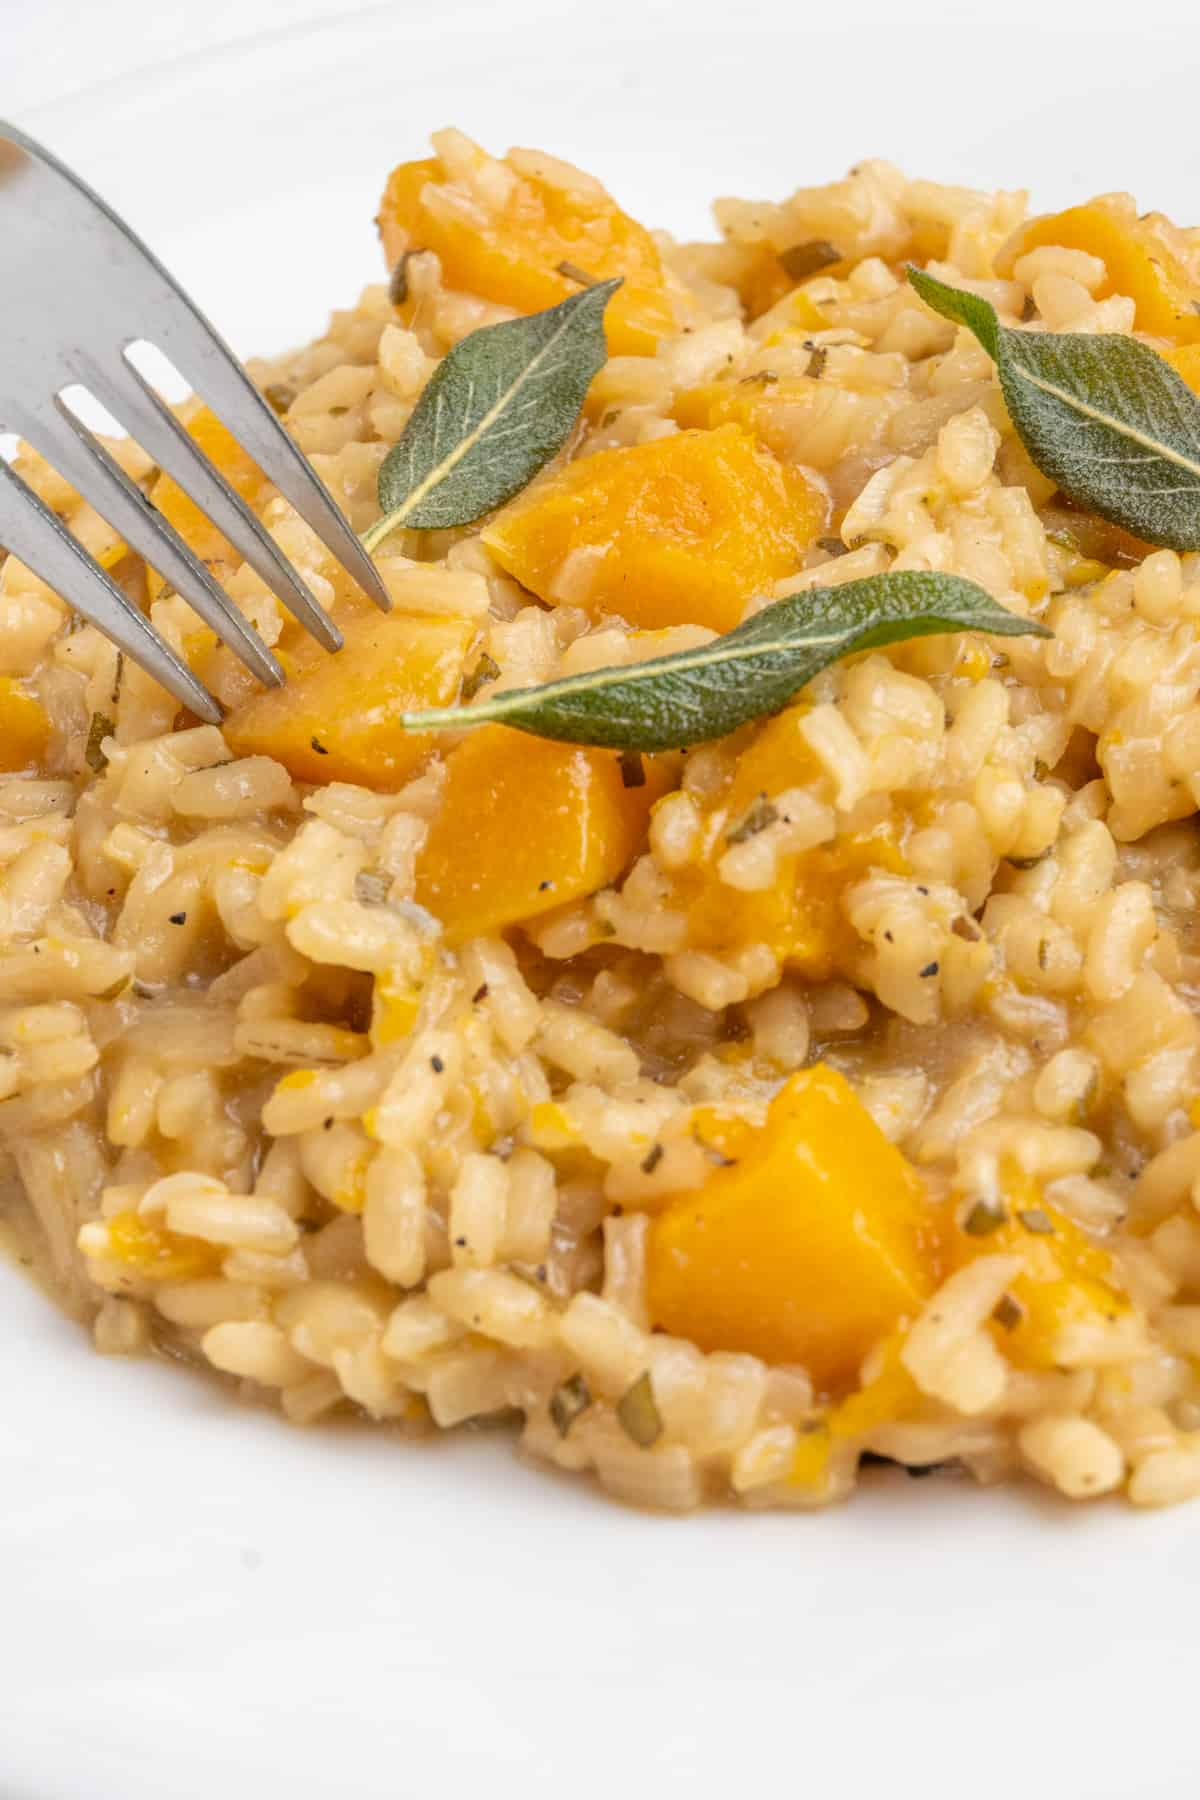 A fork spears a cube of butternut squash from the plate of risotto.